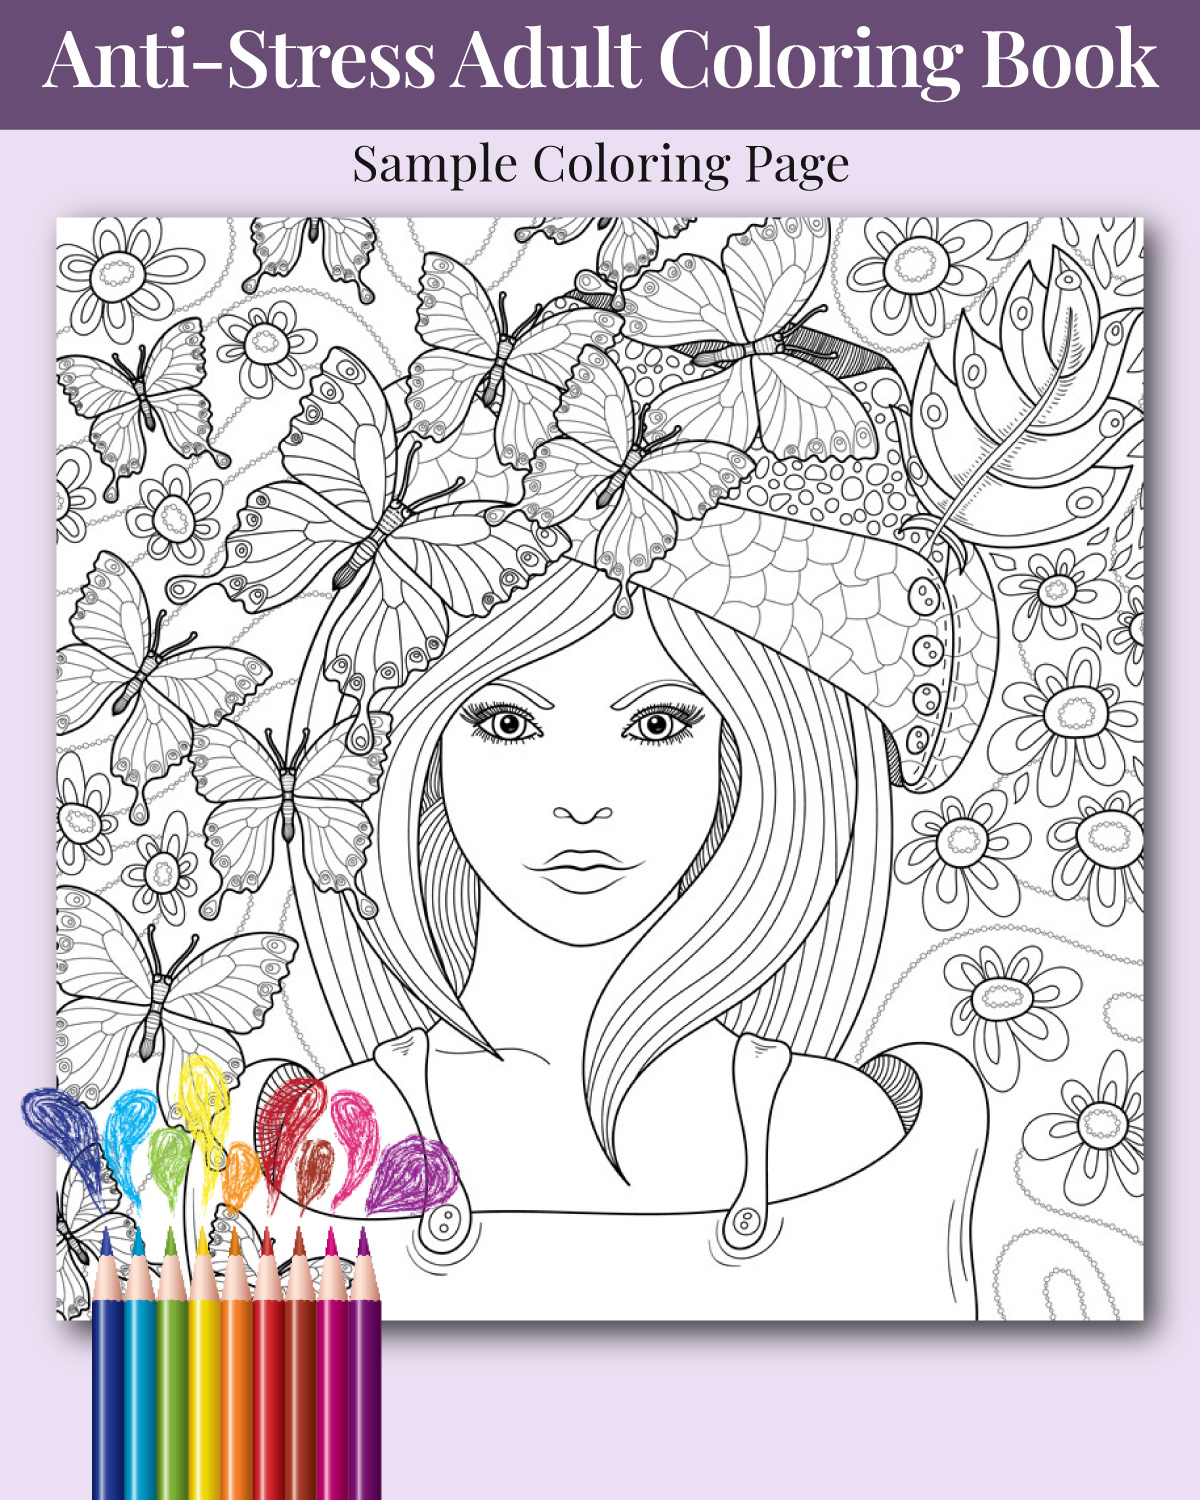 She-Believed-She-Could-So-She-Did-Adult-Coloring-Book-Sample-02